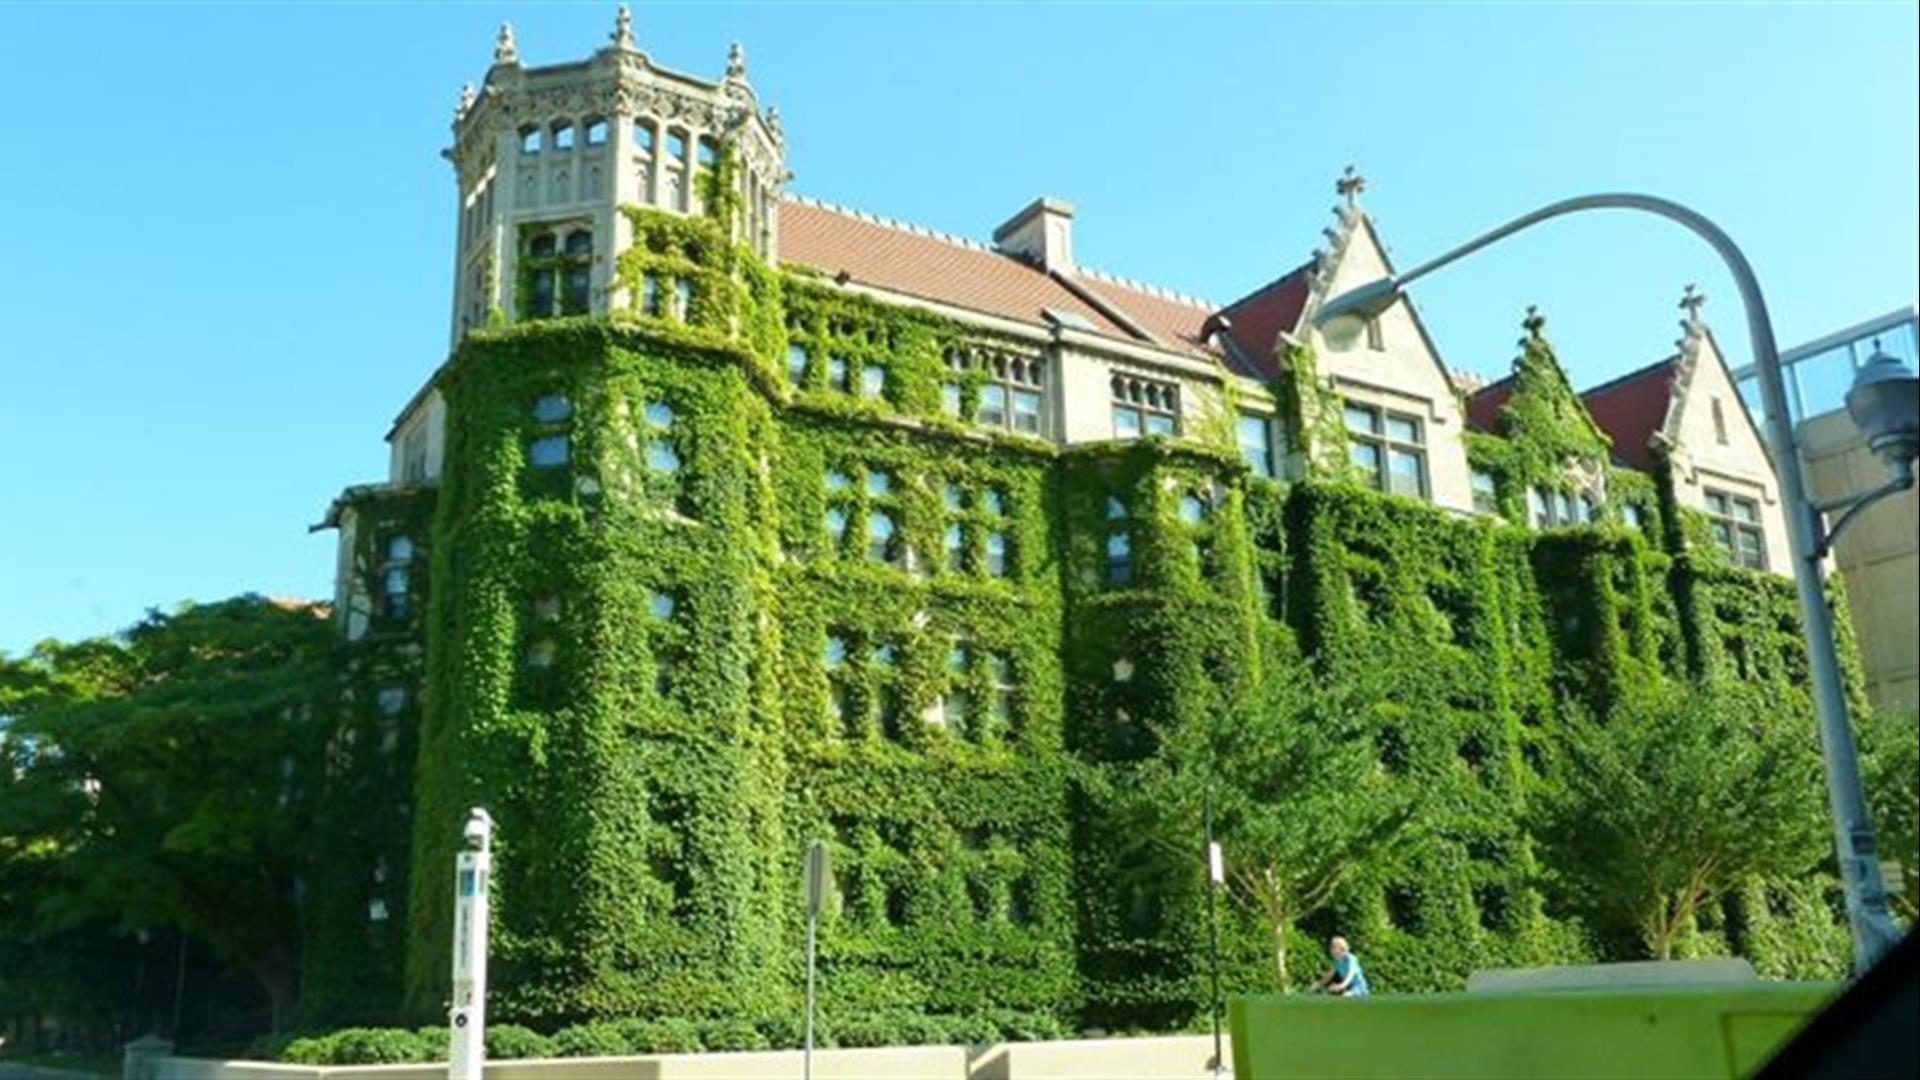 The University of Chicago Campus Green